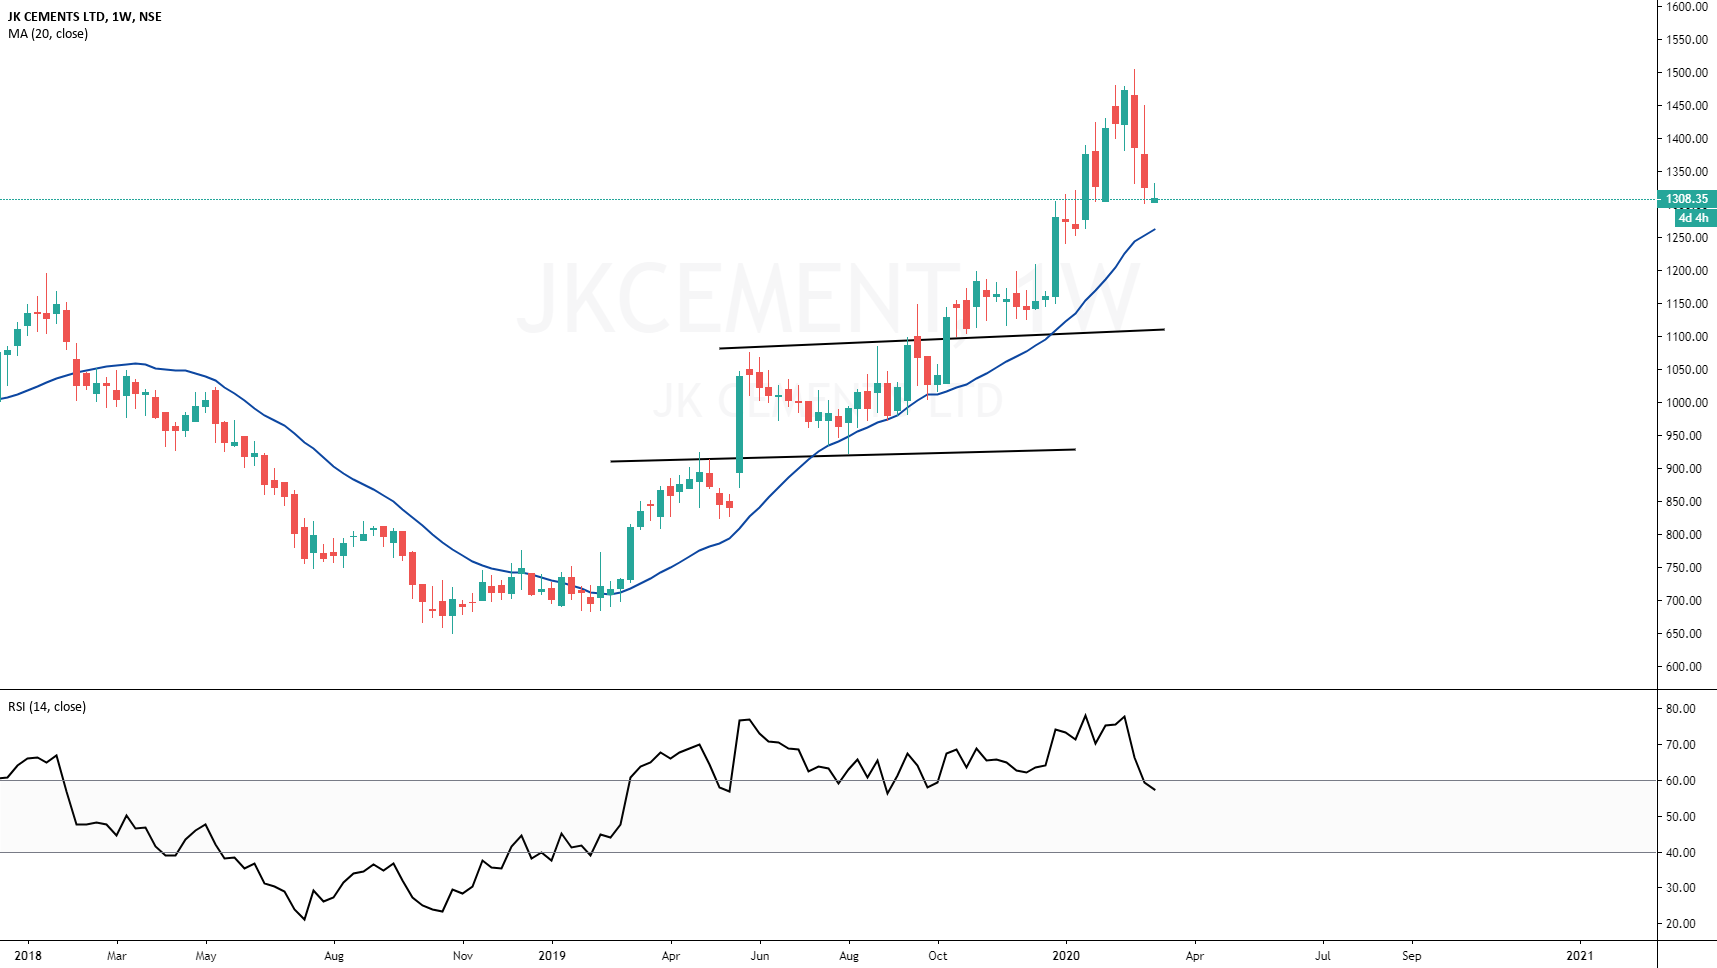 Weekly RSI > 60 and Daily RSI at 40 for NSE:JKCEMENT by G